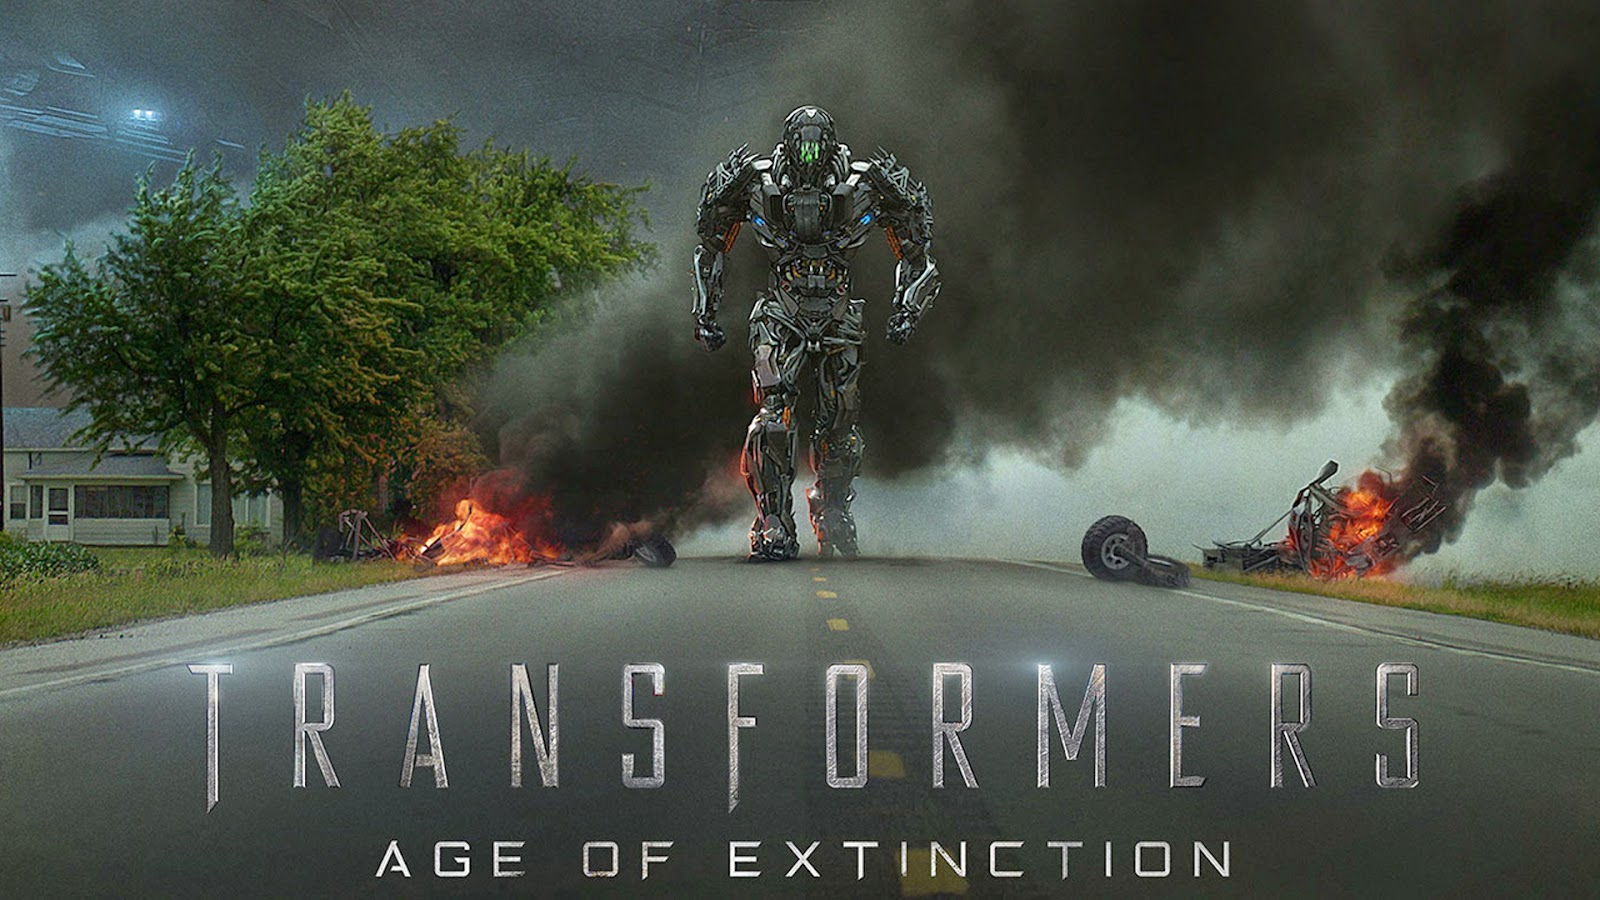 Transformers Age of Extinction (2014) : Watch free movie online